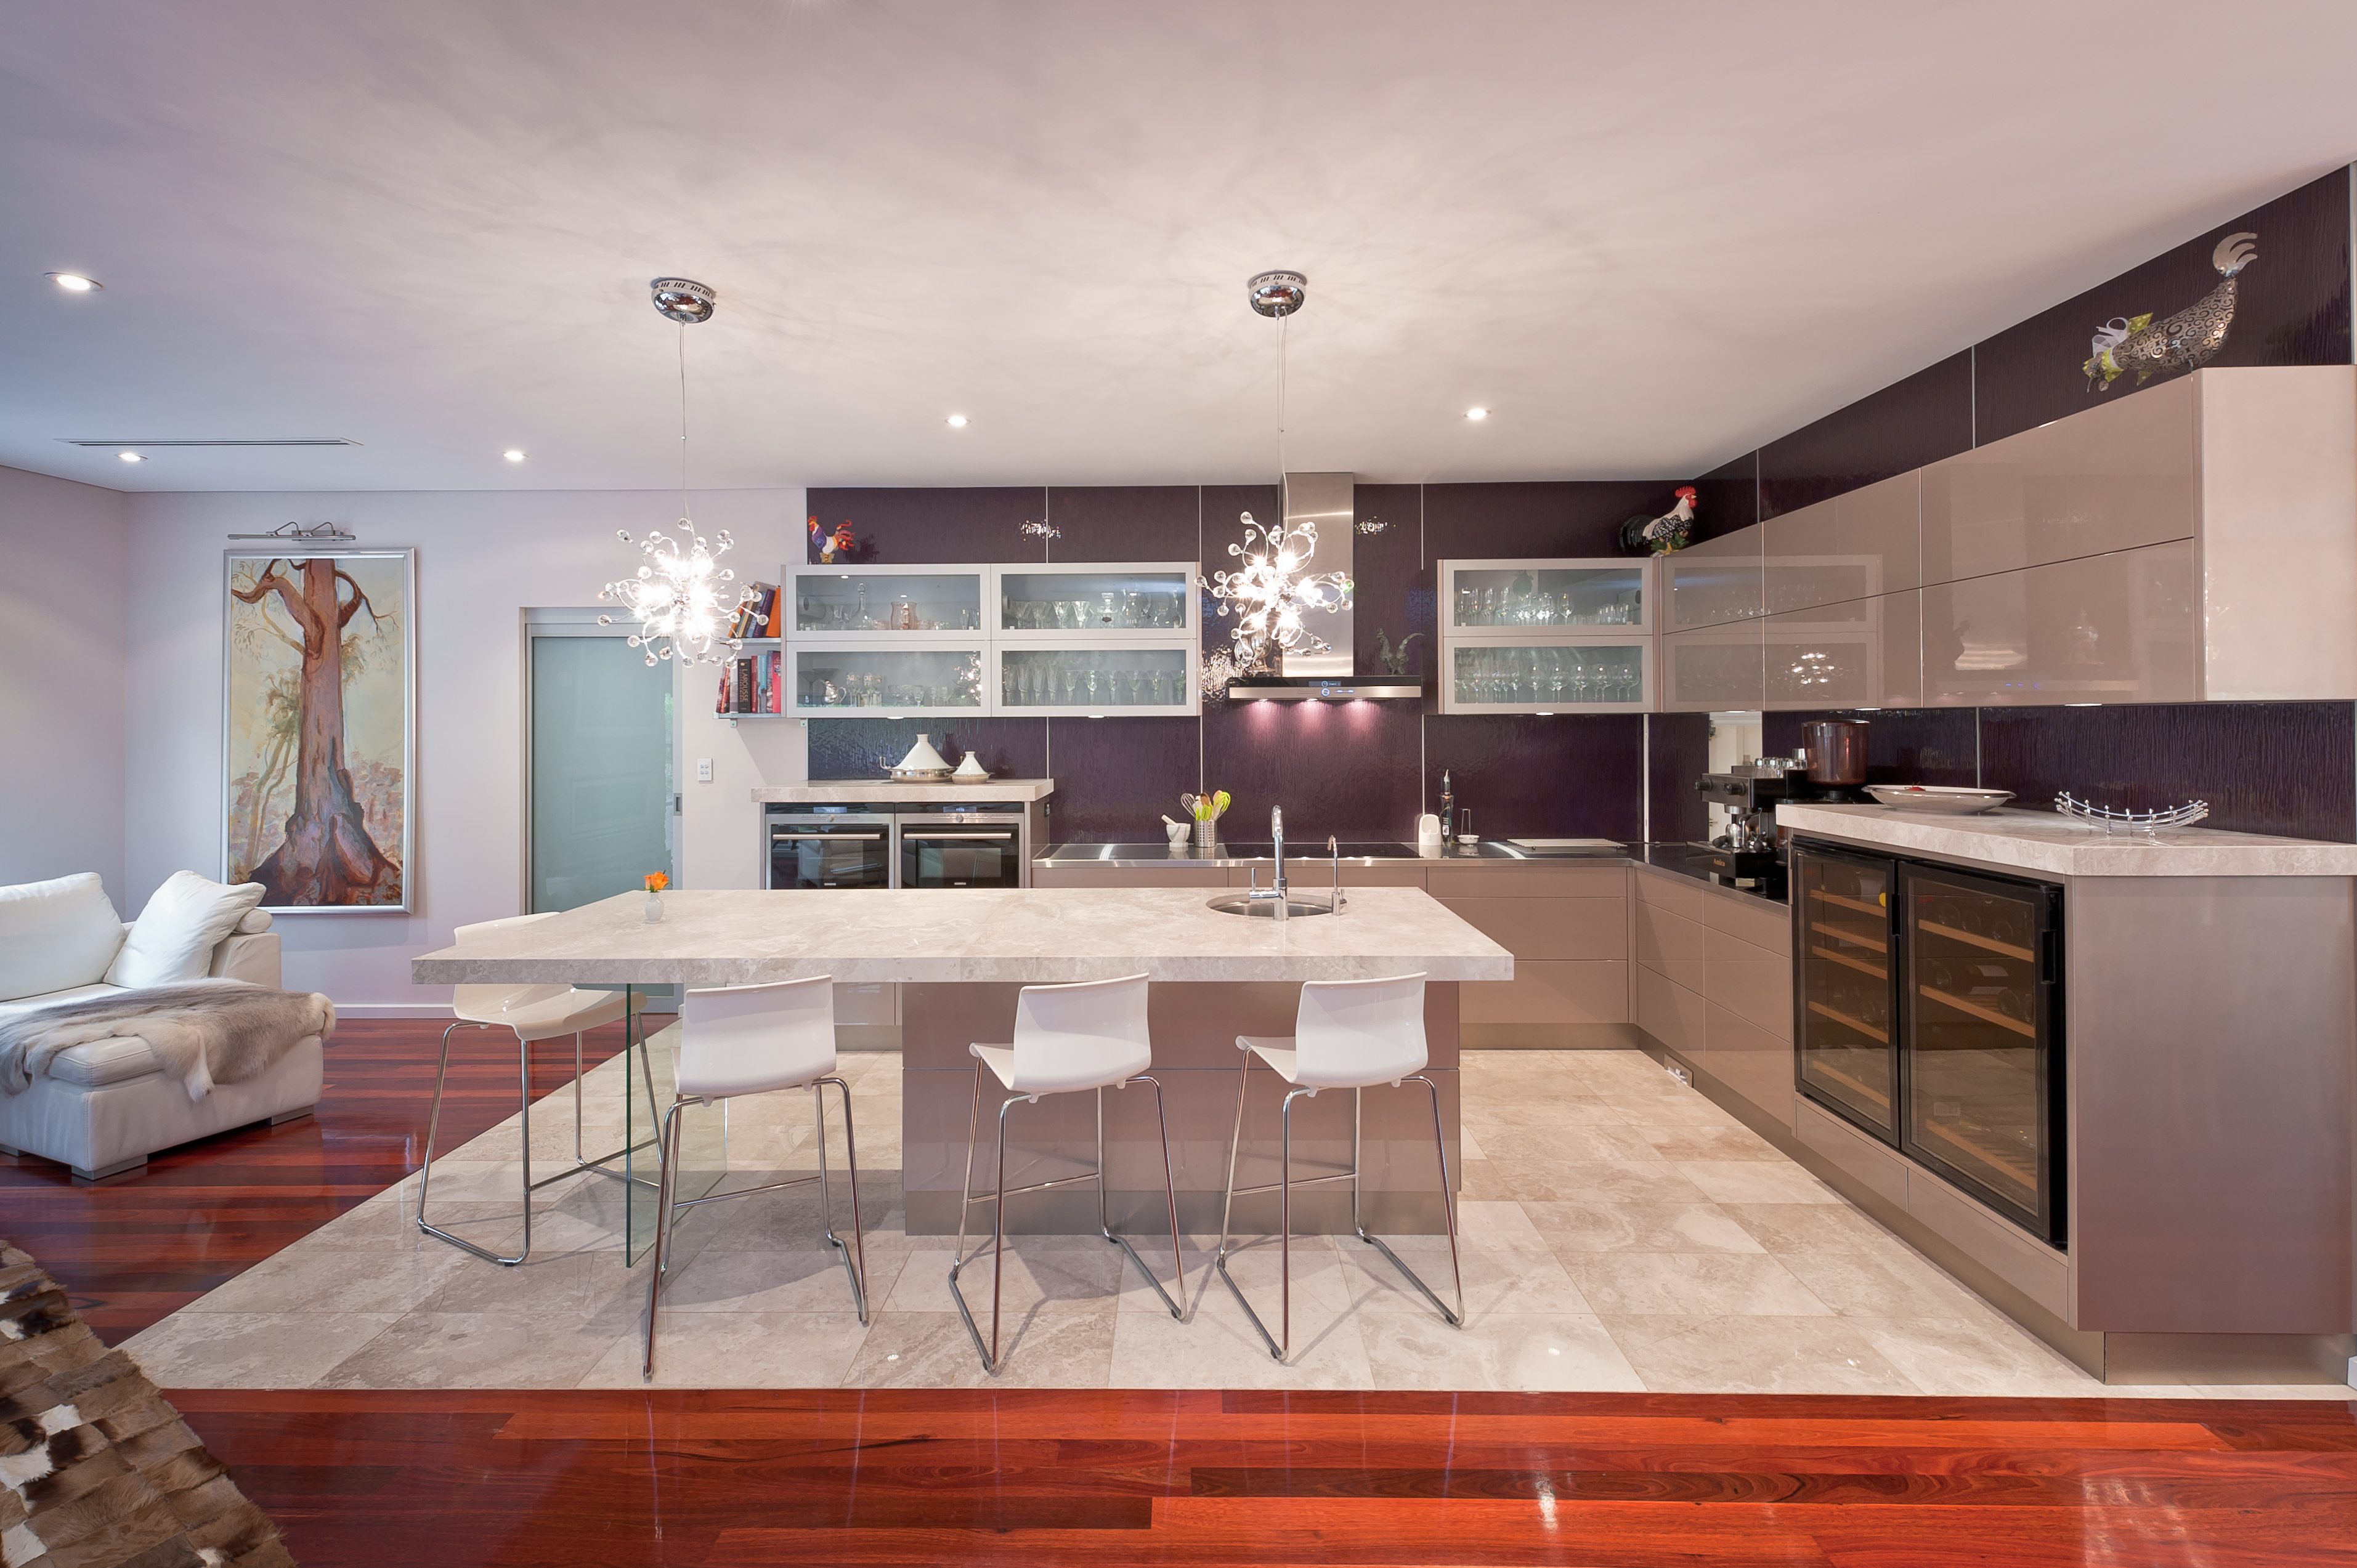 innovative kitchen: perfect for entertaining - completehome